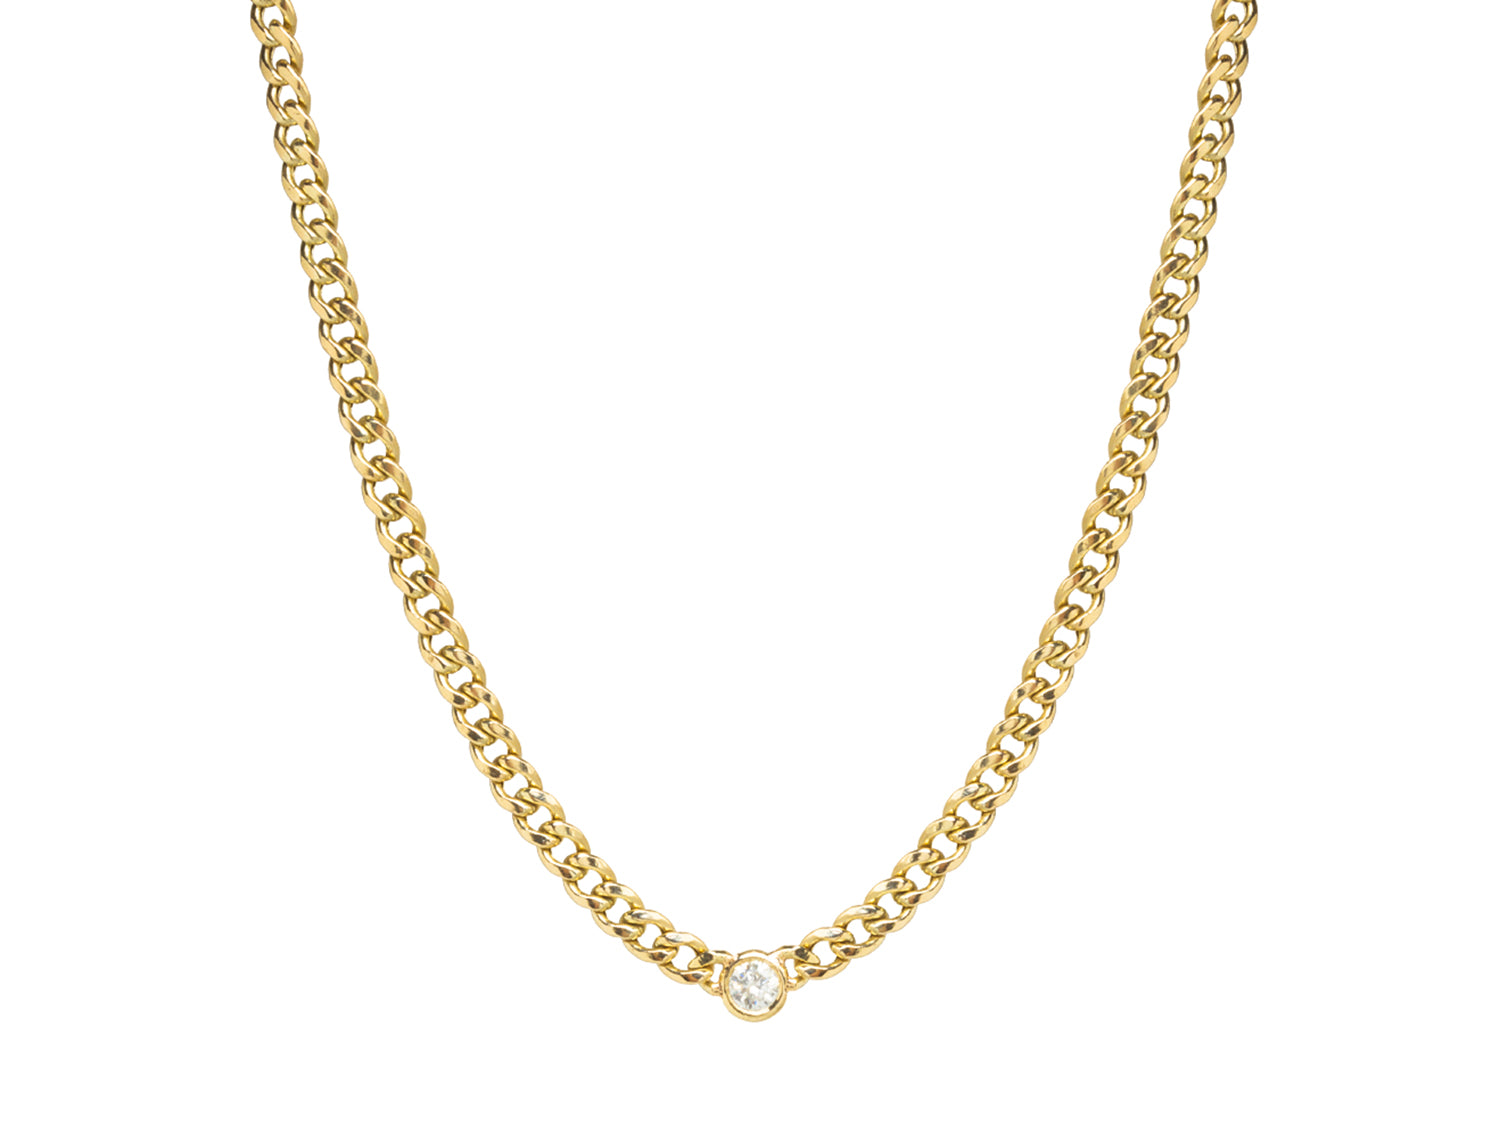 Floating Diamond Curb Chain Necklace in Yellow Gold